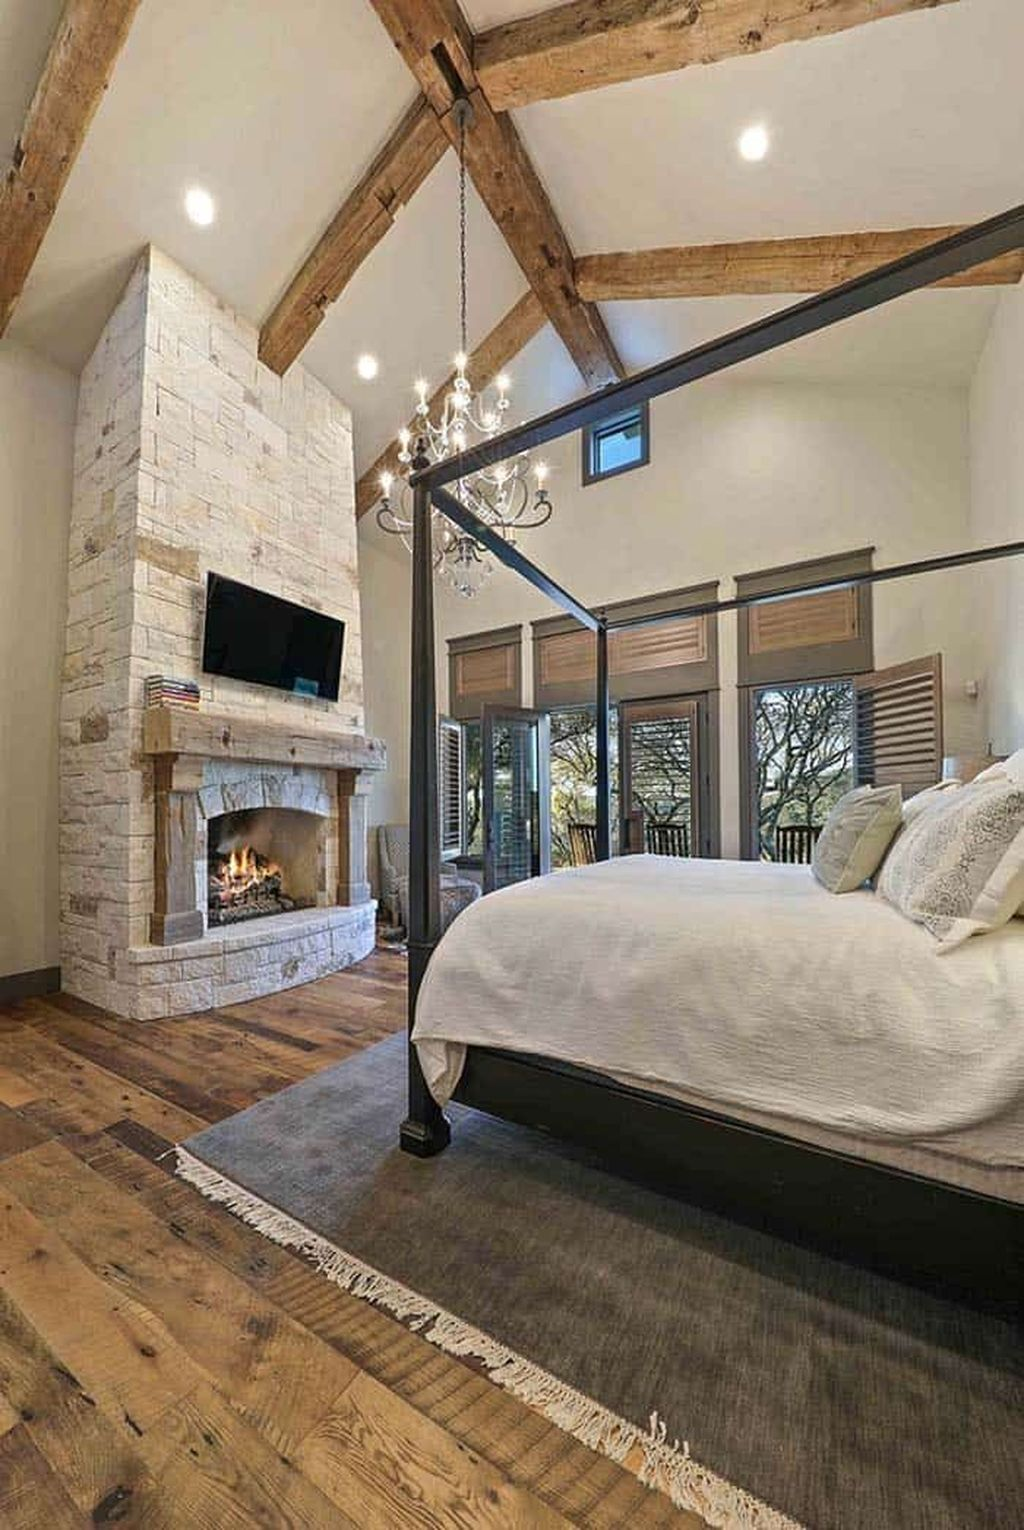 Awesome Bedroom Design With Fireplace Ideas Perfect For This Winter 26